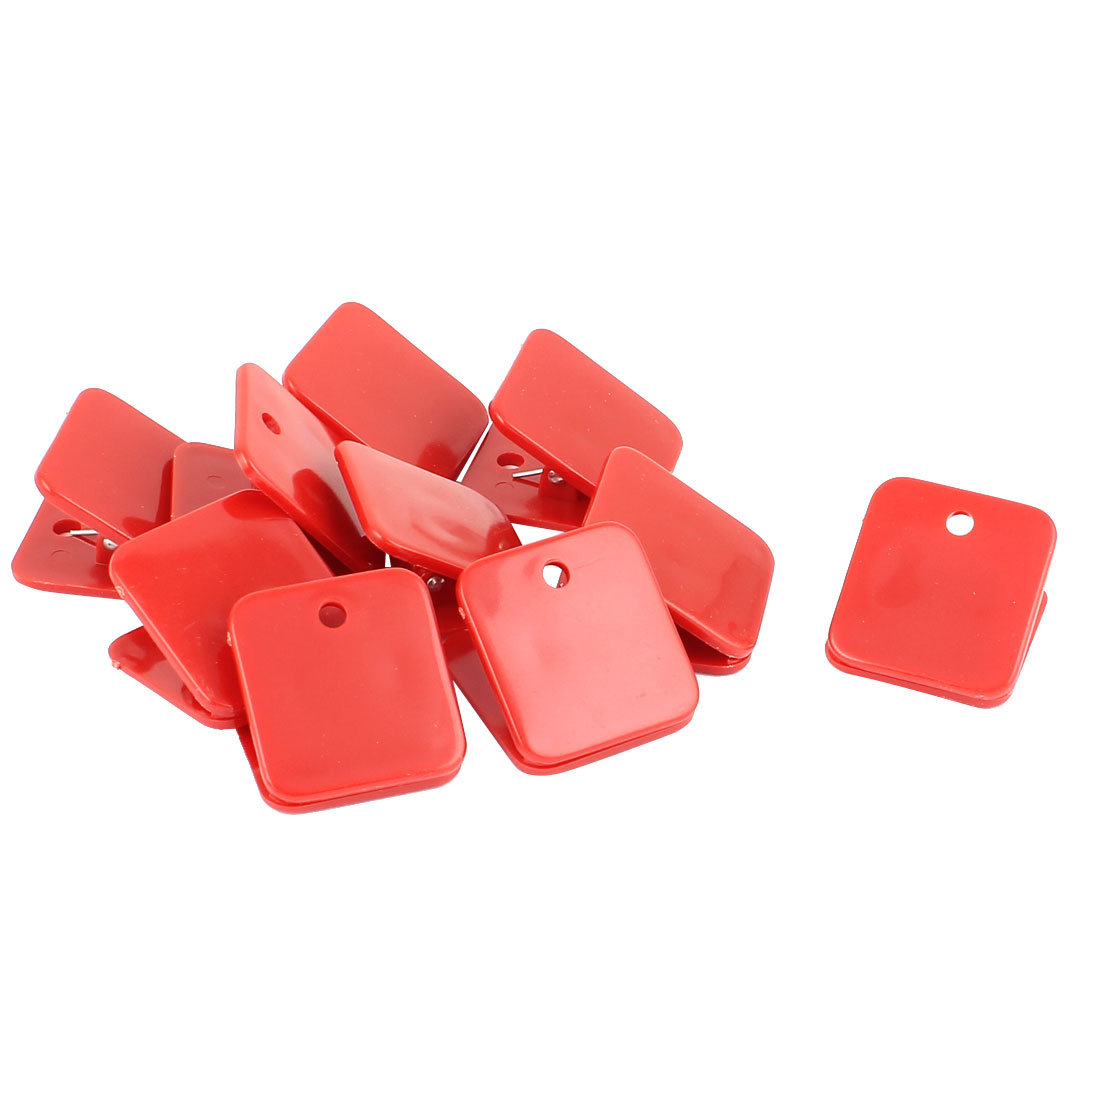 Red Plastic Square Spring Loaded Paper Document Memo Note Stationery Binder Clip 10pcs